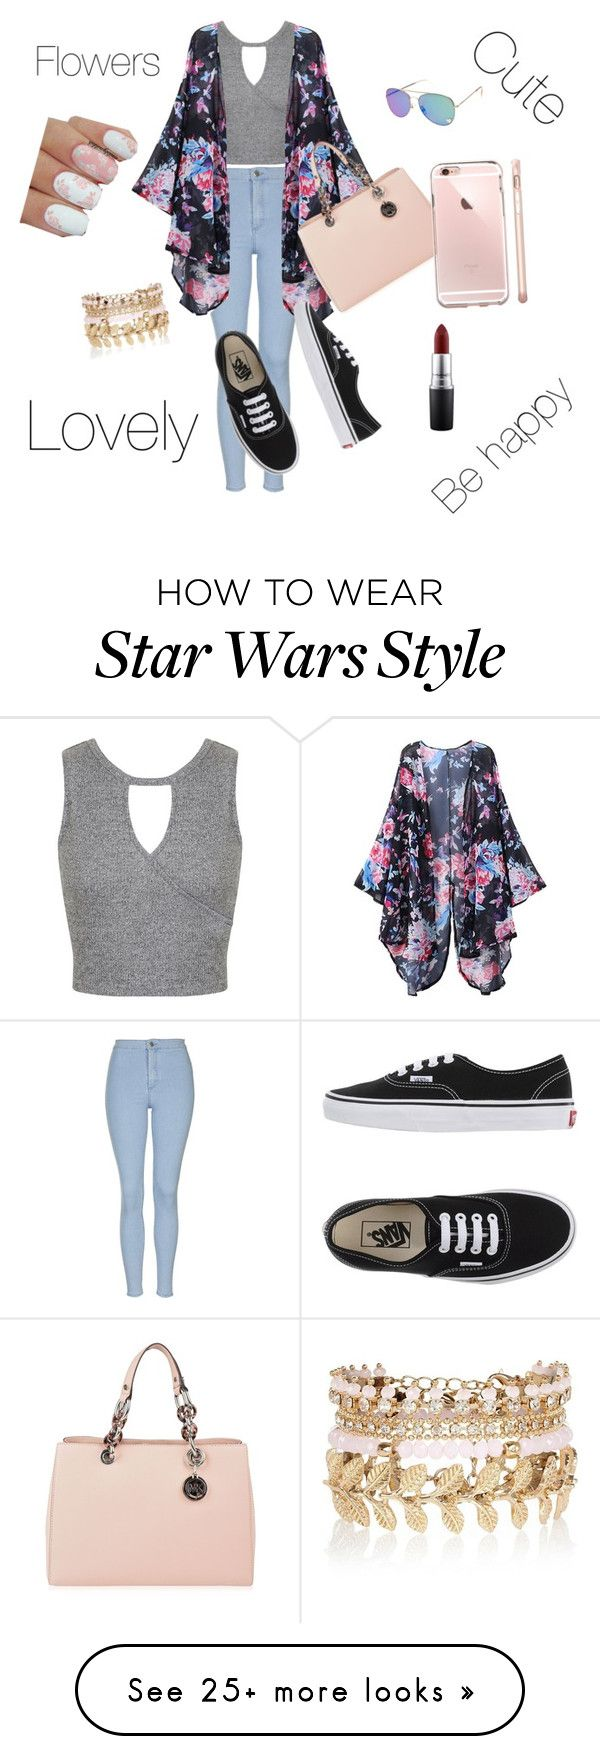 """Sin título #4"" by isabellaabou on Polyvore featuring Topshop, Miss Selfridge, Vans, MICHAEL Michael Kors, River Island, MAC Cosmetics, women's clothing, women, female and woman"